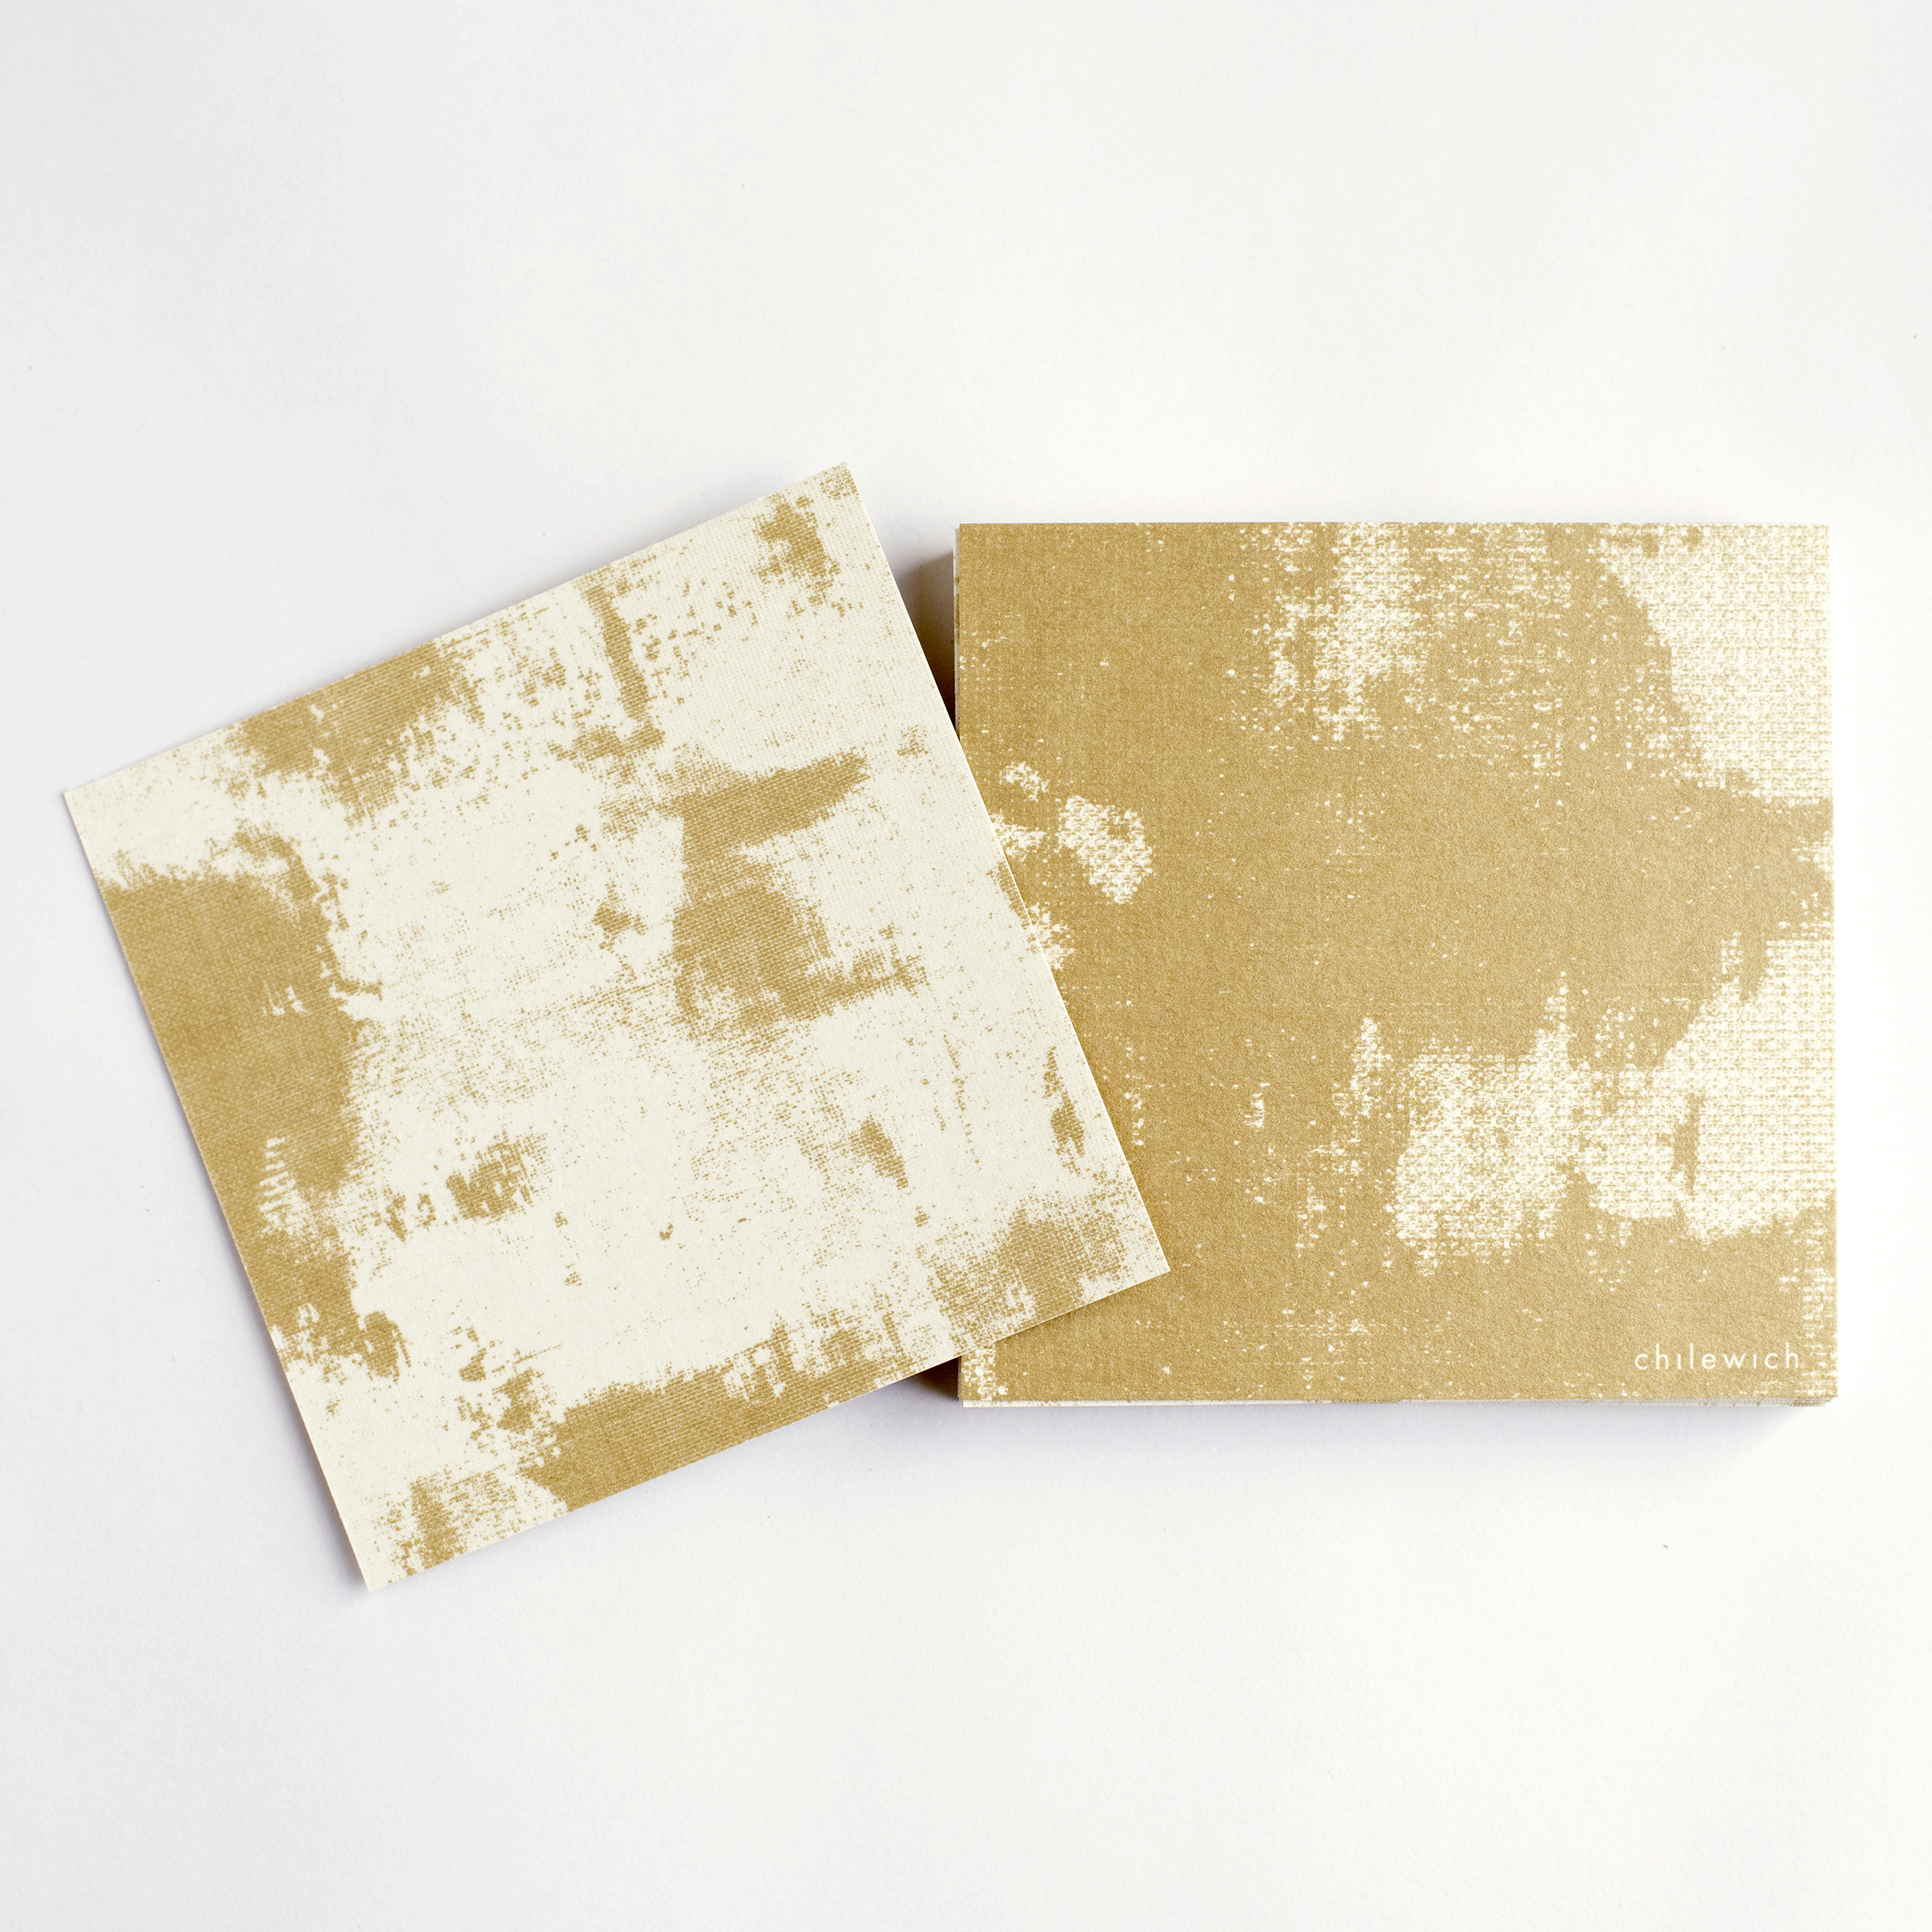 Chilewich Coasters $13